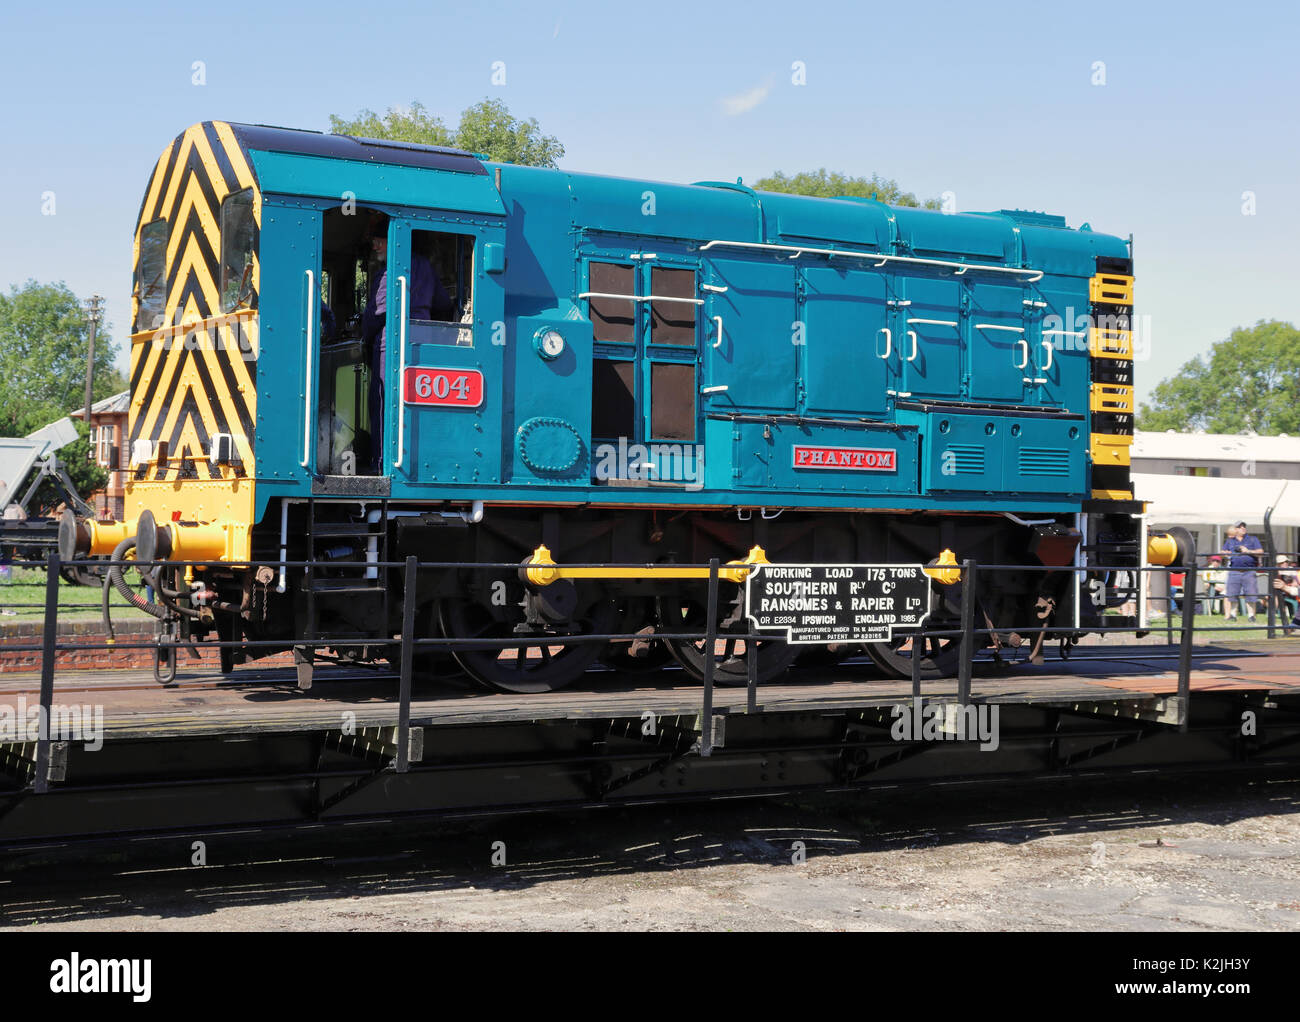 Diesel Locomotive on a turntable at Didcot Railway centre in England - Stock Image